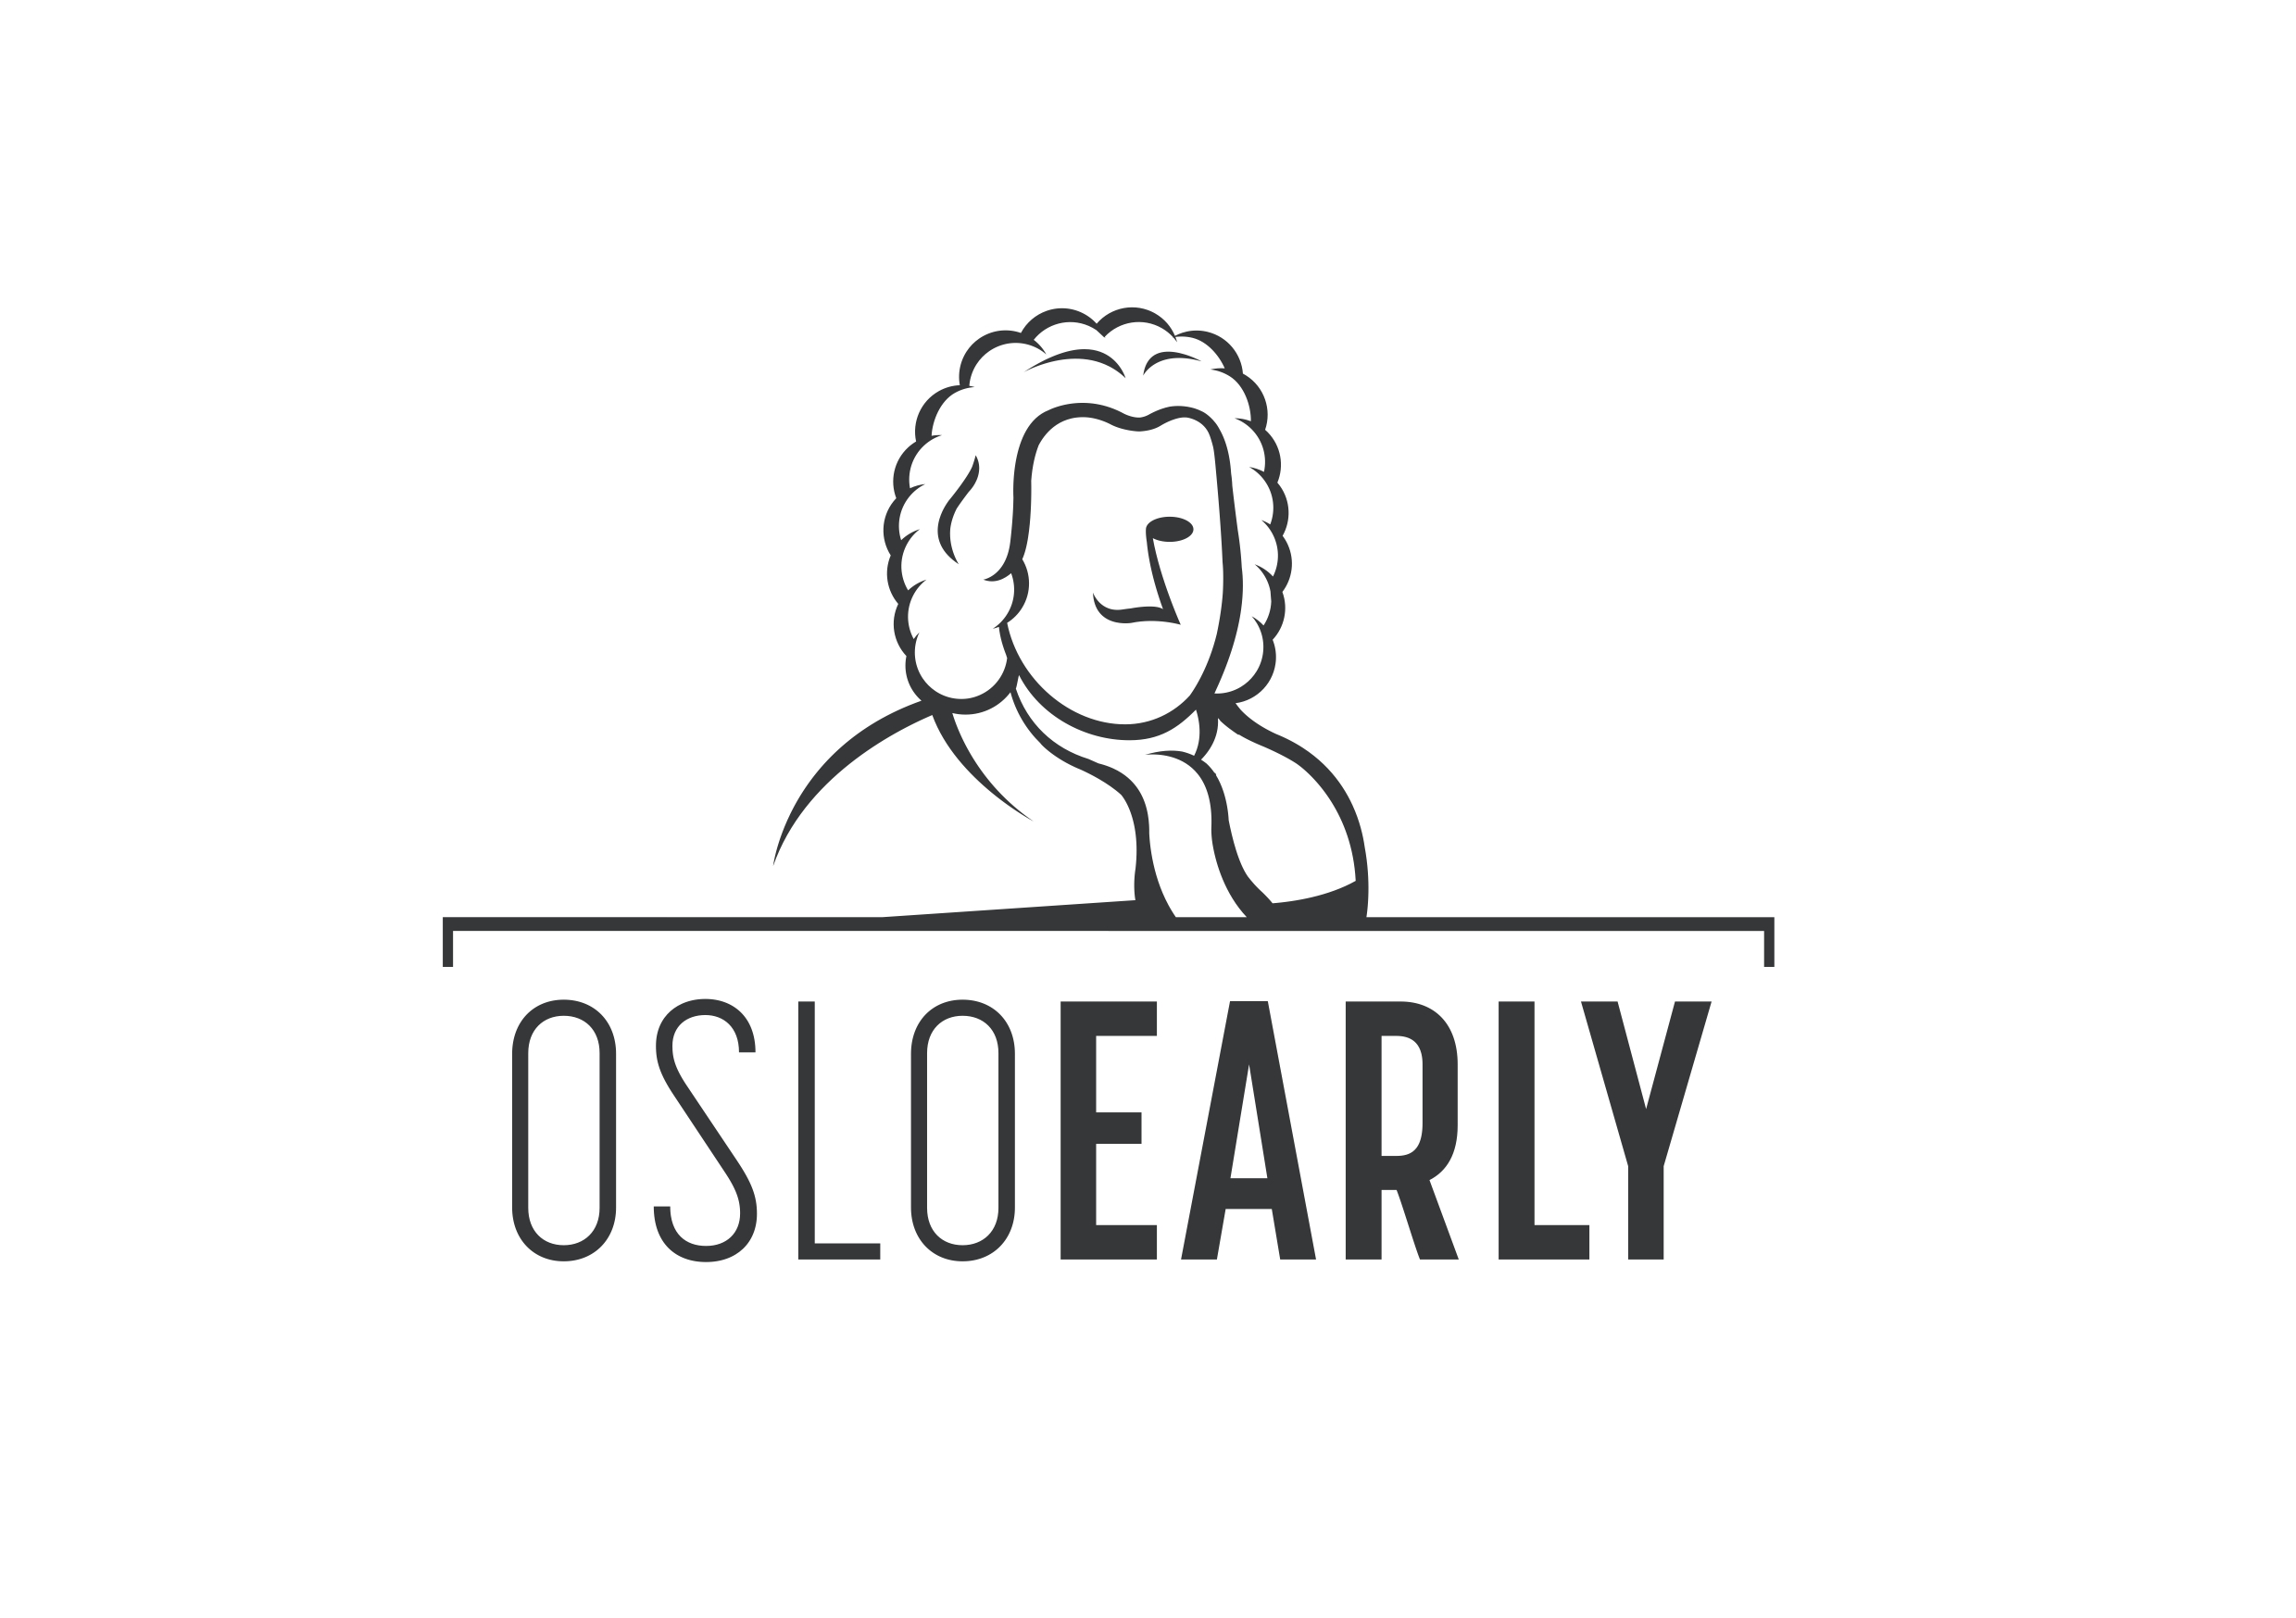 Oslo early logo